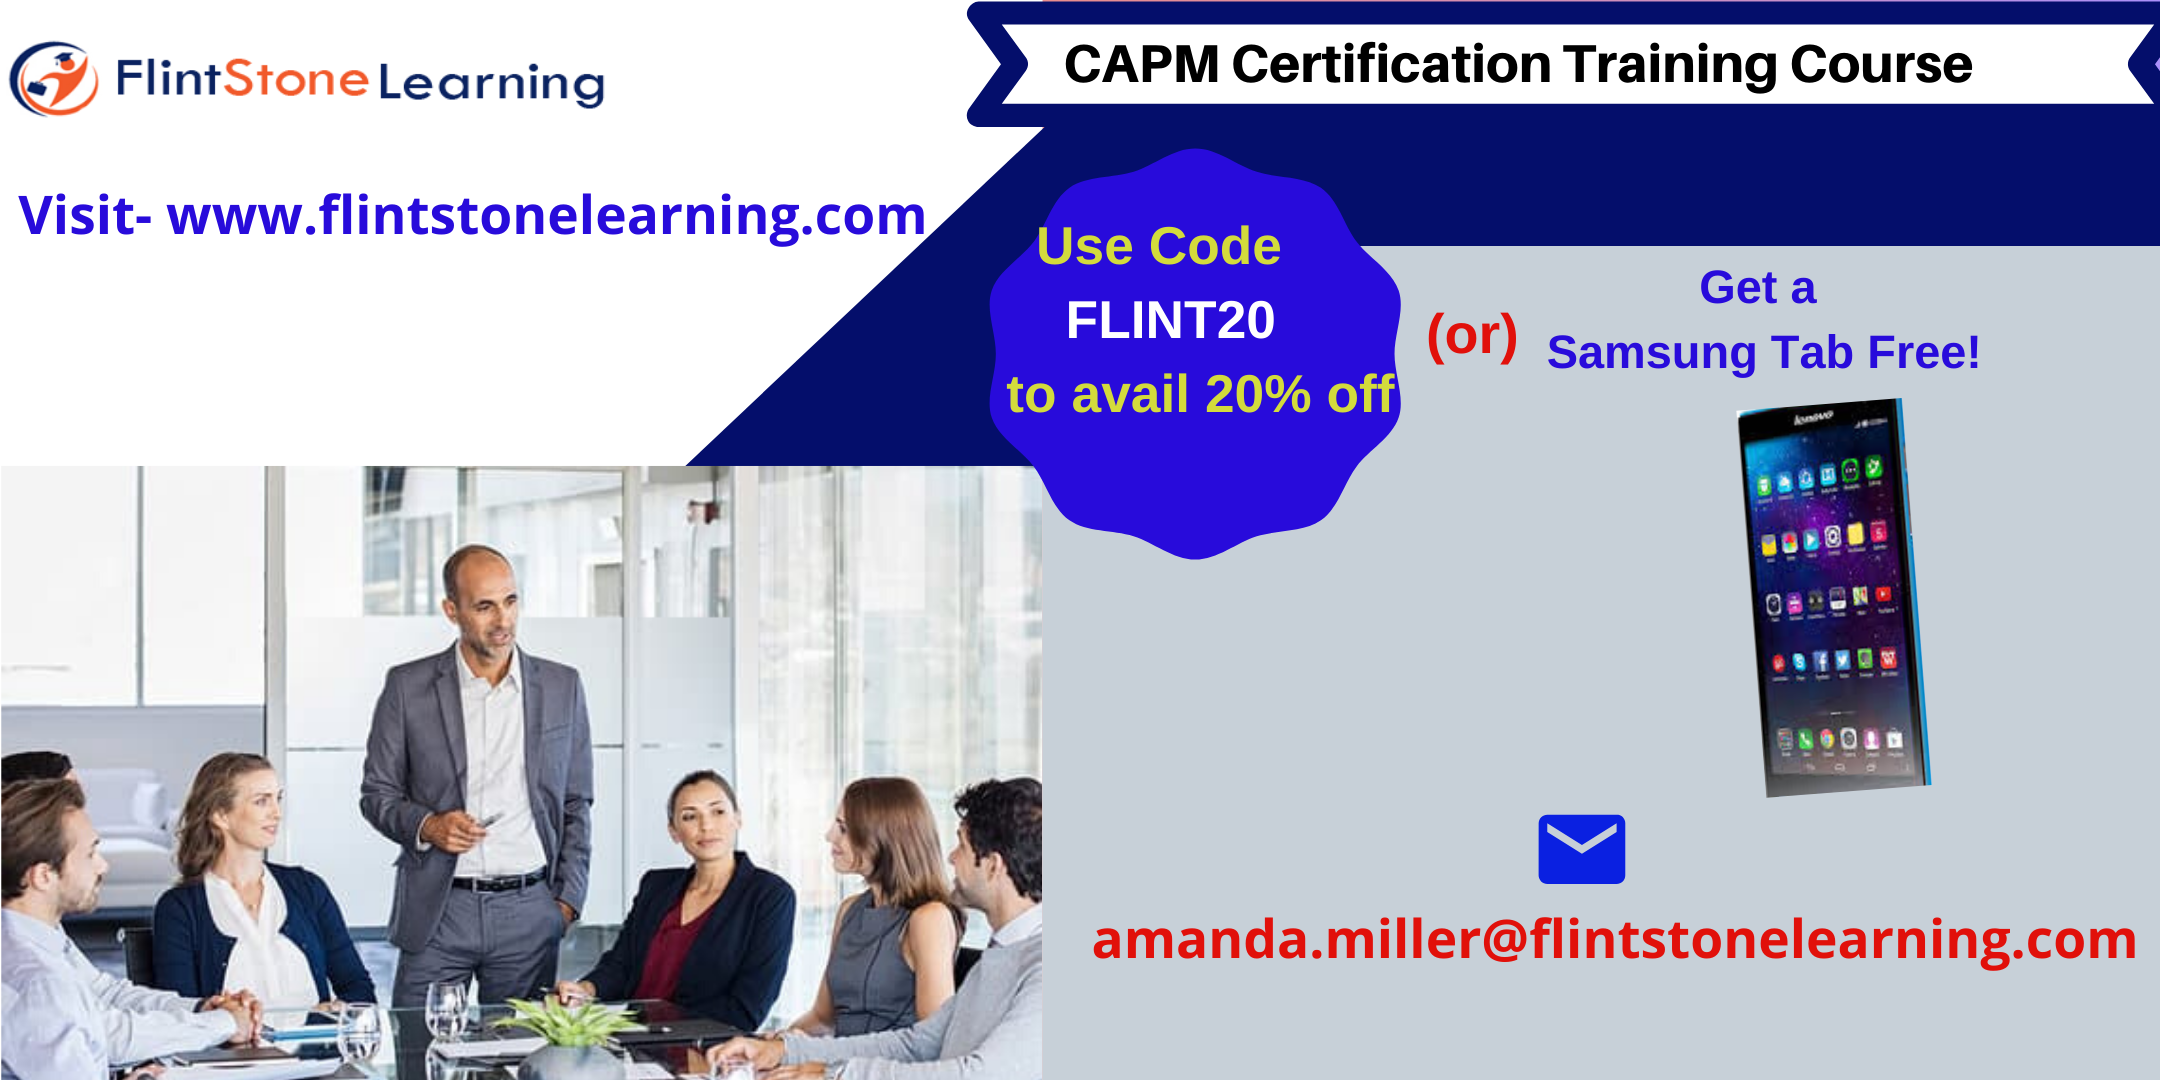 CAPM Certification Training Course in San Ysidro, CA